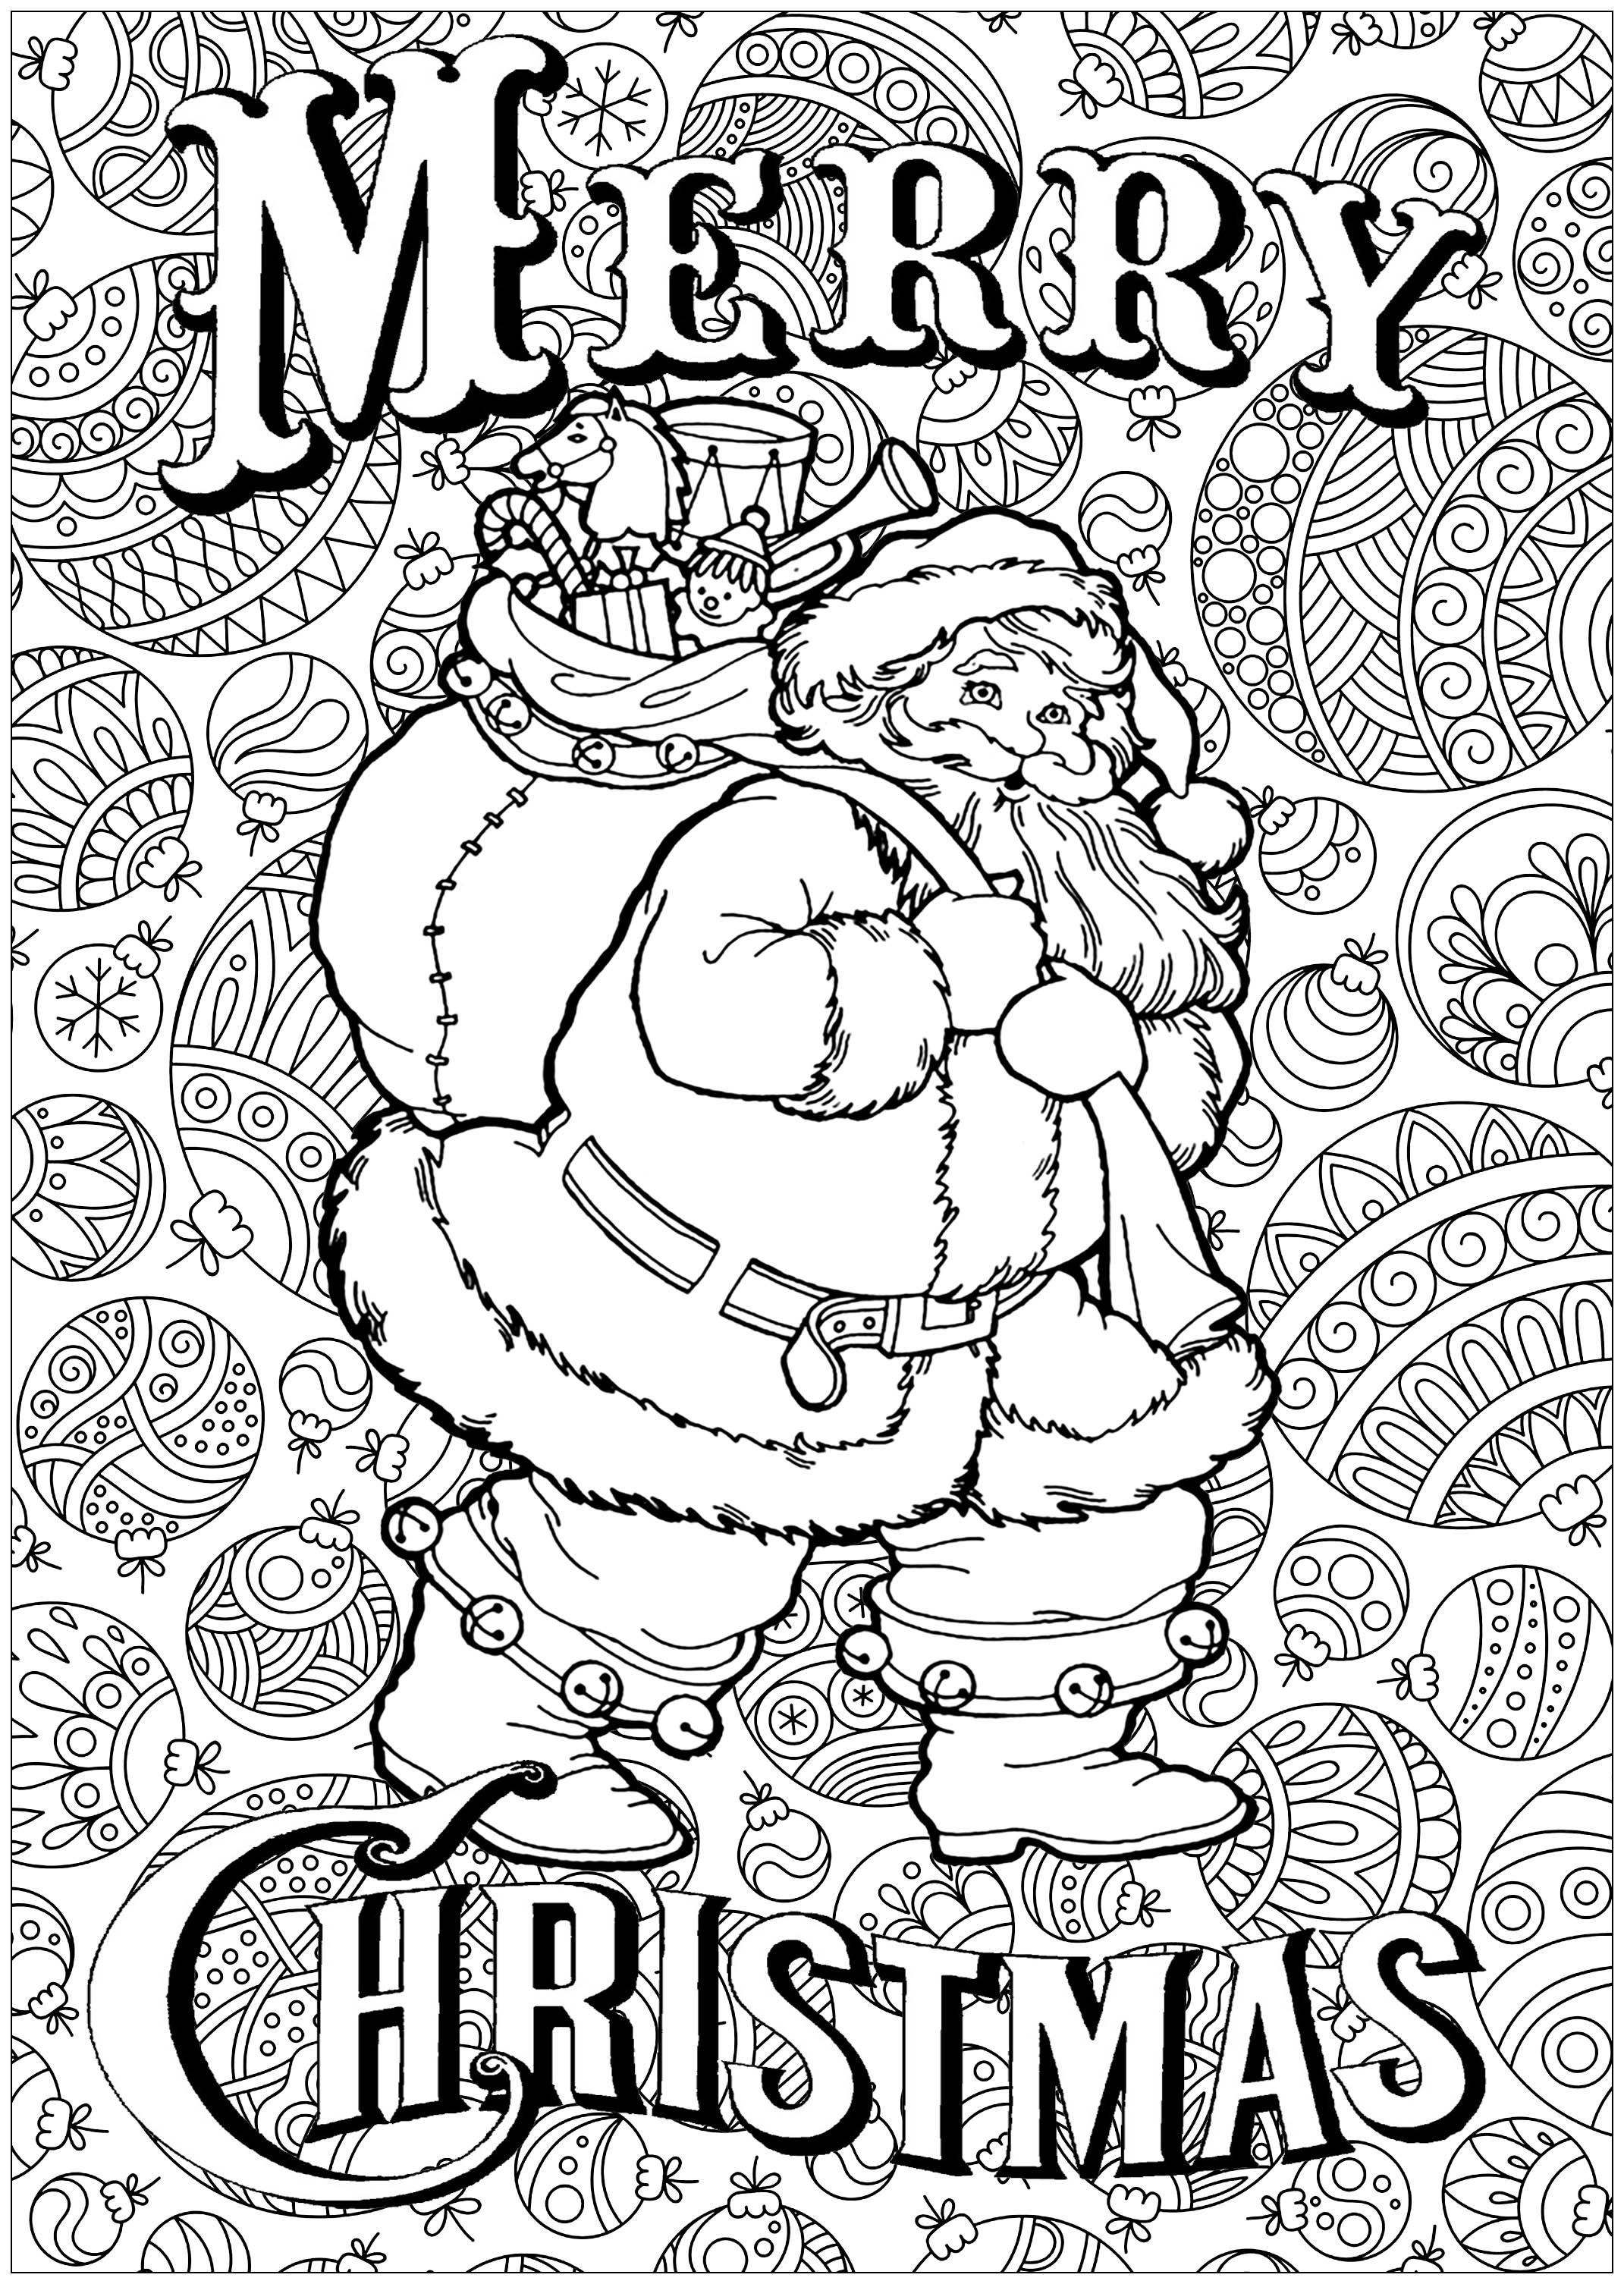 Christmas Coloring Pages For 4 Year Olds With 100 Merry 2018 Quotes Wishes Messages Xmas